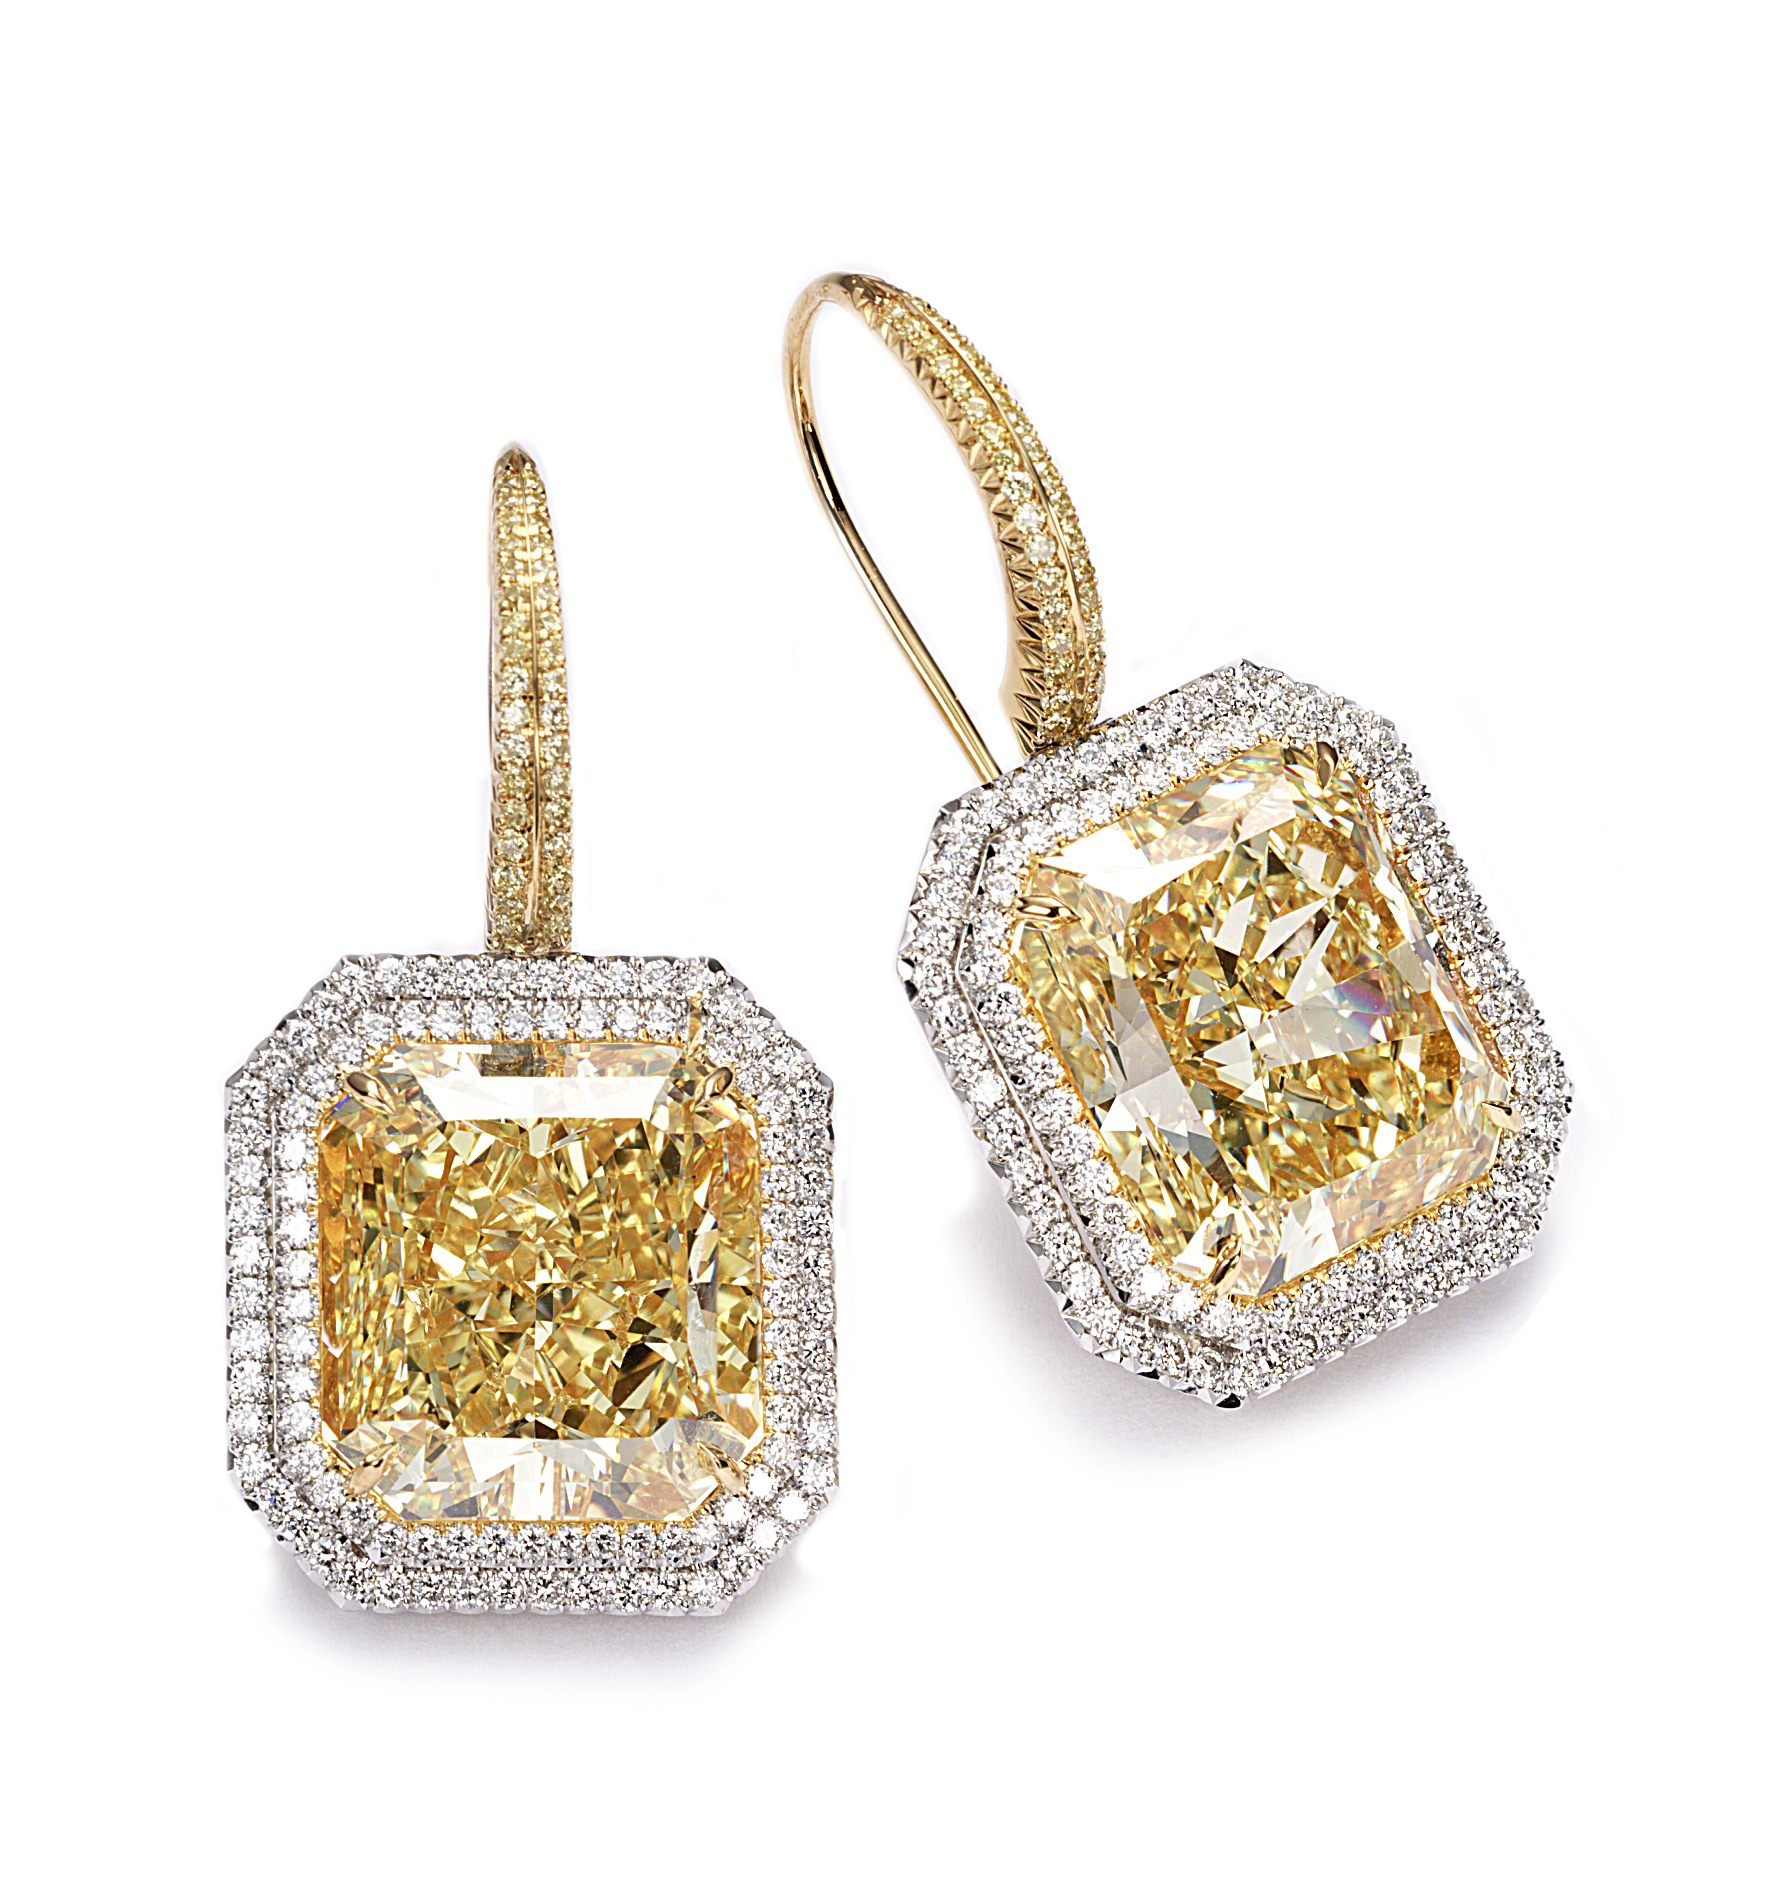 forevermark_by_julius_klein_drop_earrings_with_exceptional_fancy_yellow_radiant_diamonds_set_in_18k_white_and_yellow_gold_31.82_ctw.jpg